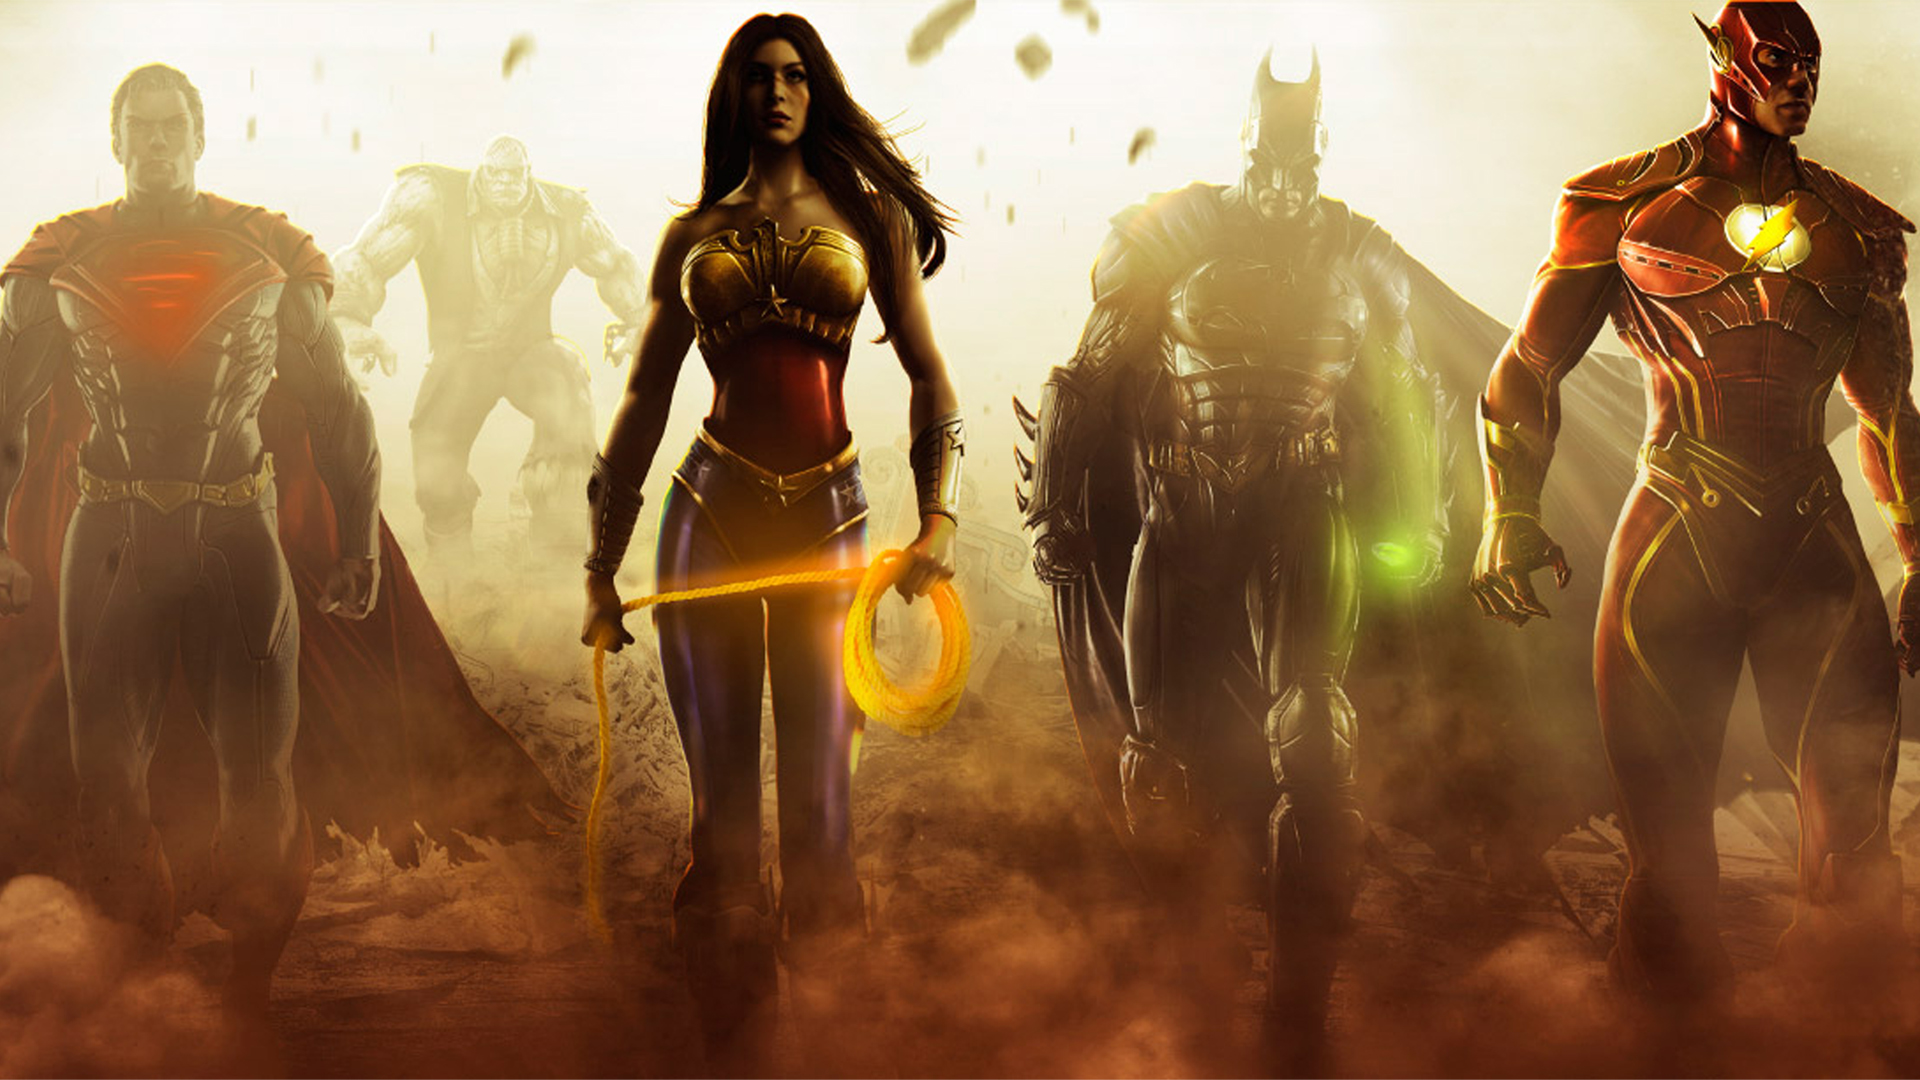 92 Injustice Gods Among Us HD Wallpapers Backgrounds   Wallpaper 1920x1080